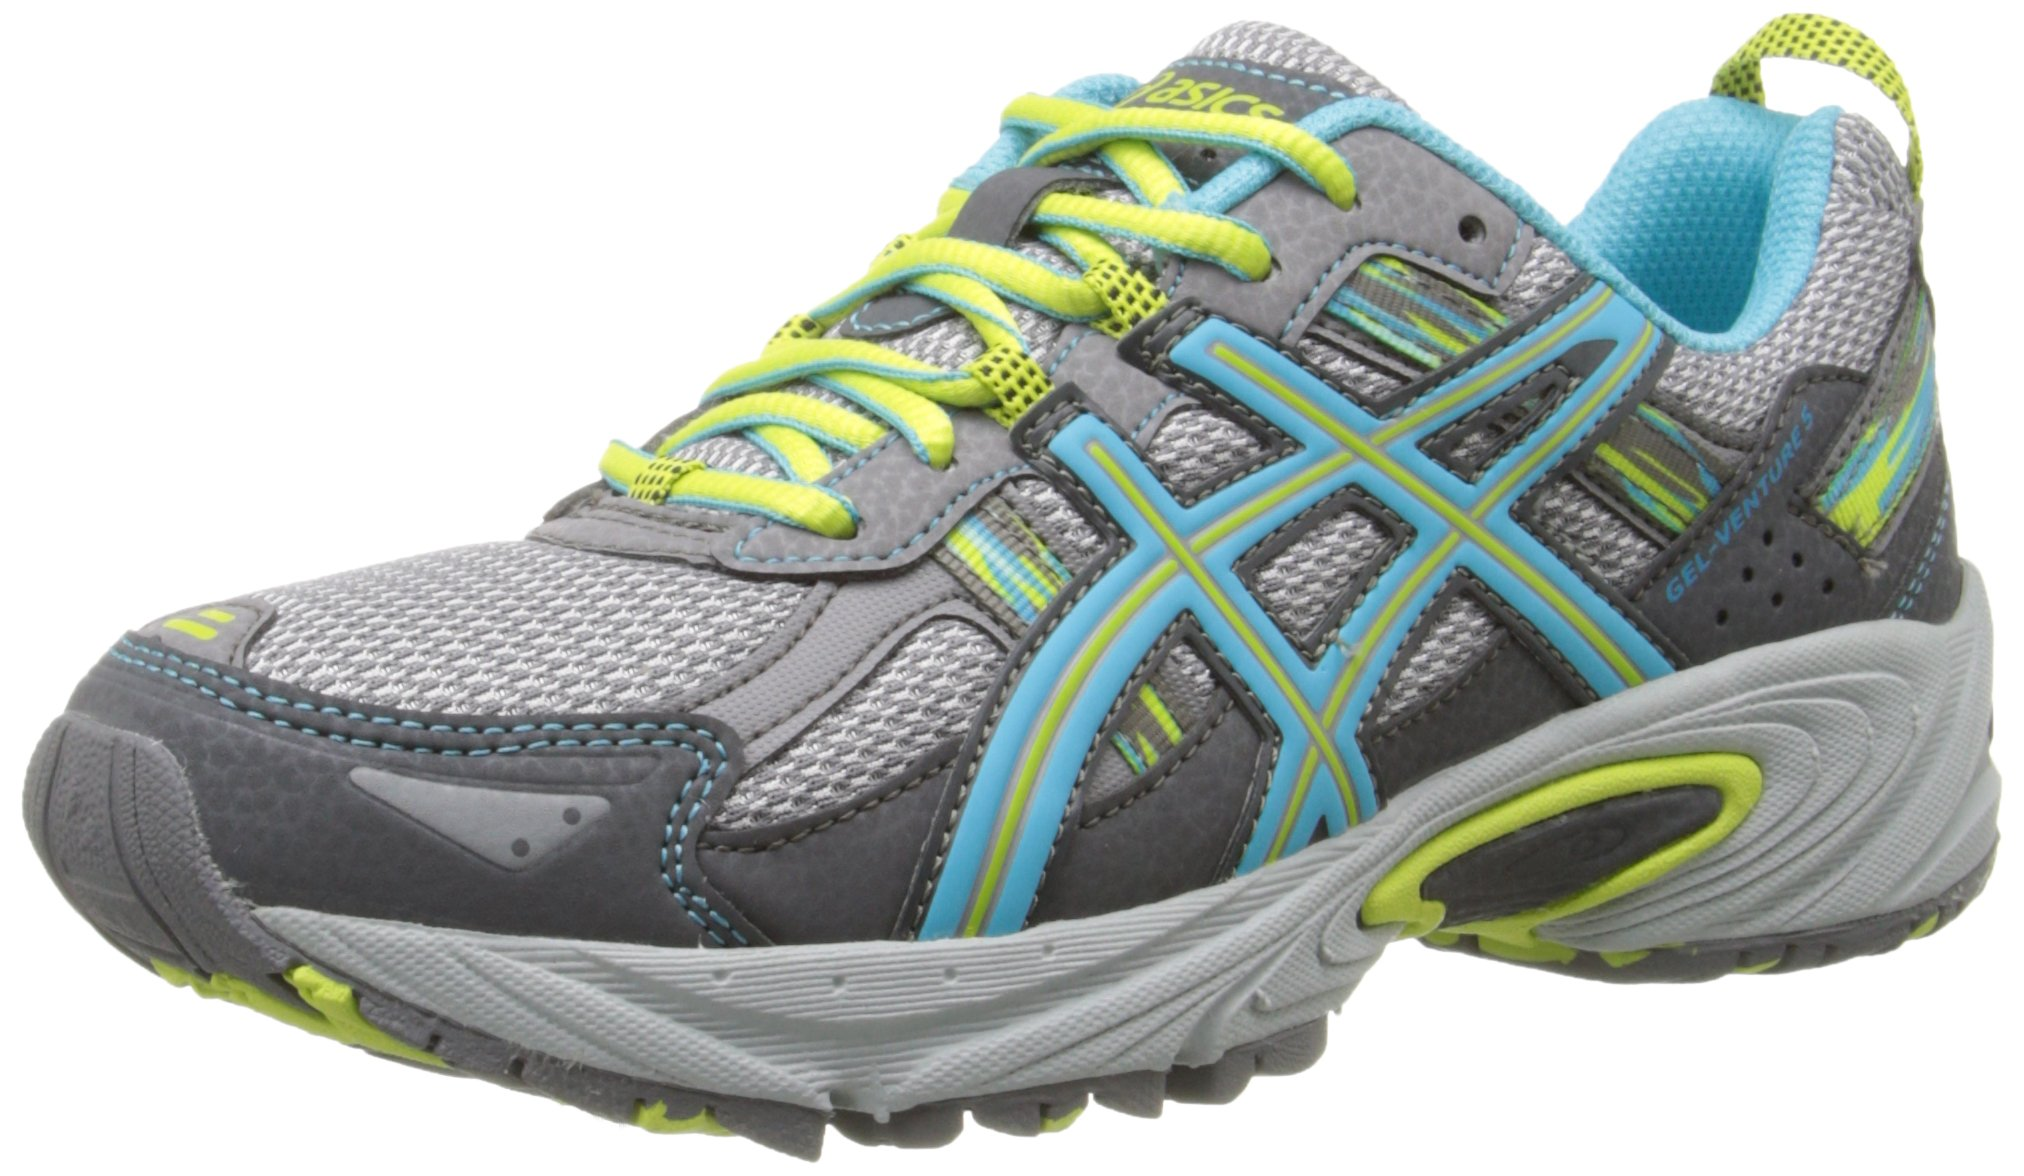 ASICS Women's Gel-Venture 5 Running Shoe, Silver Grey/Turquoise/Lime Punch, 5 M US